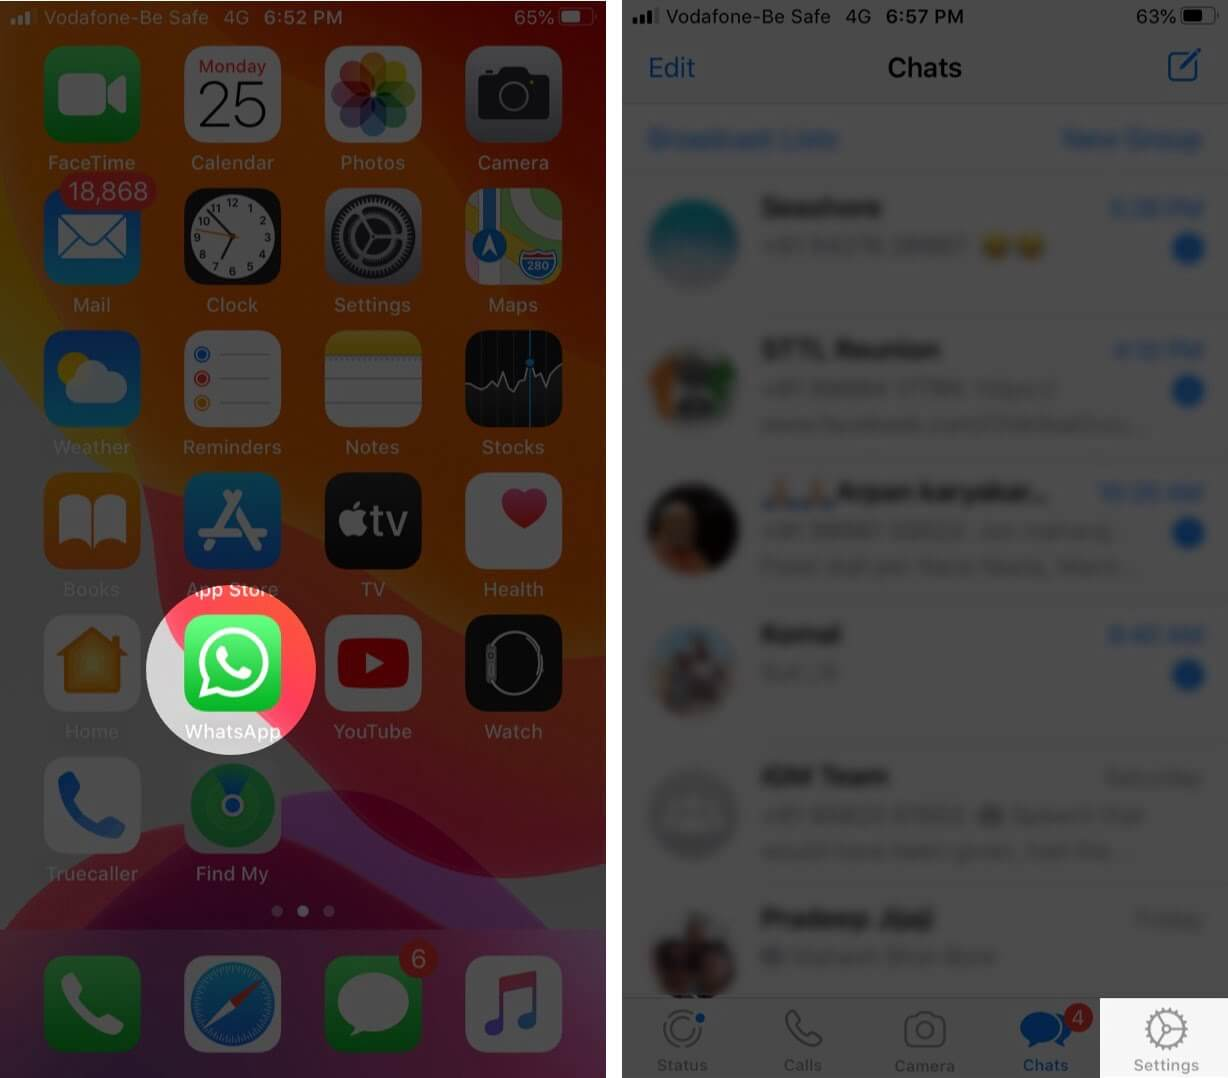 open whatsapp and tap settings on iphone